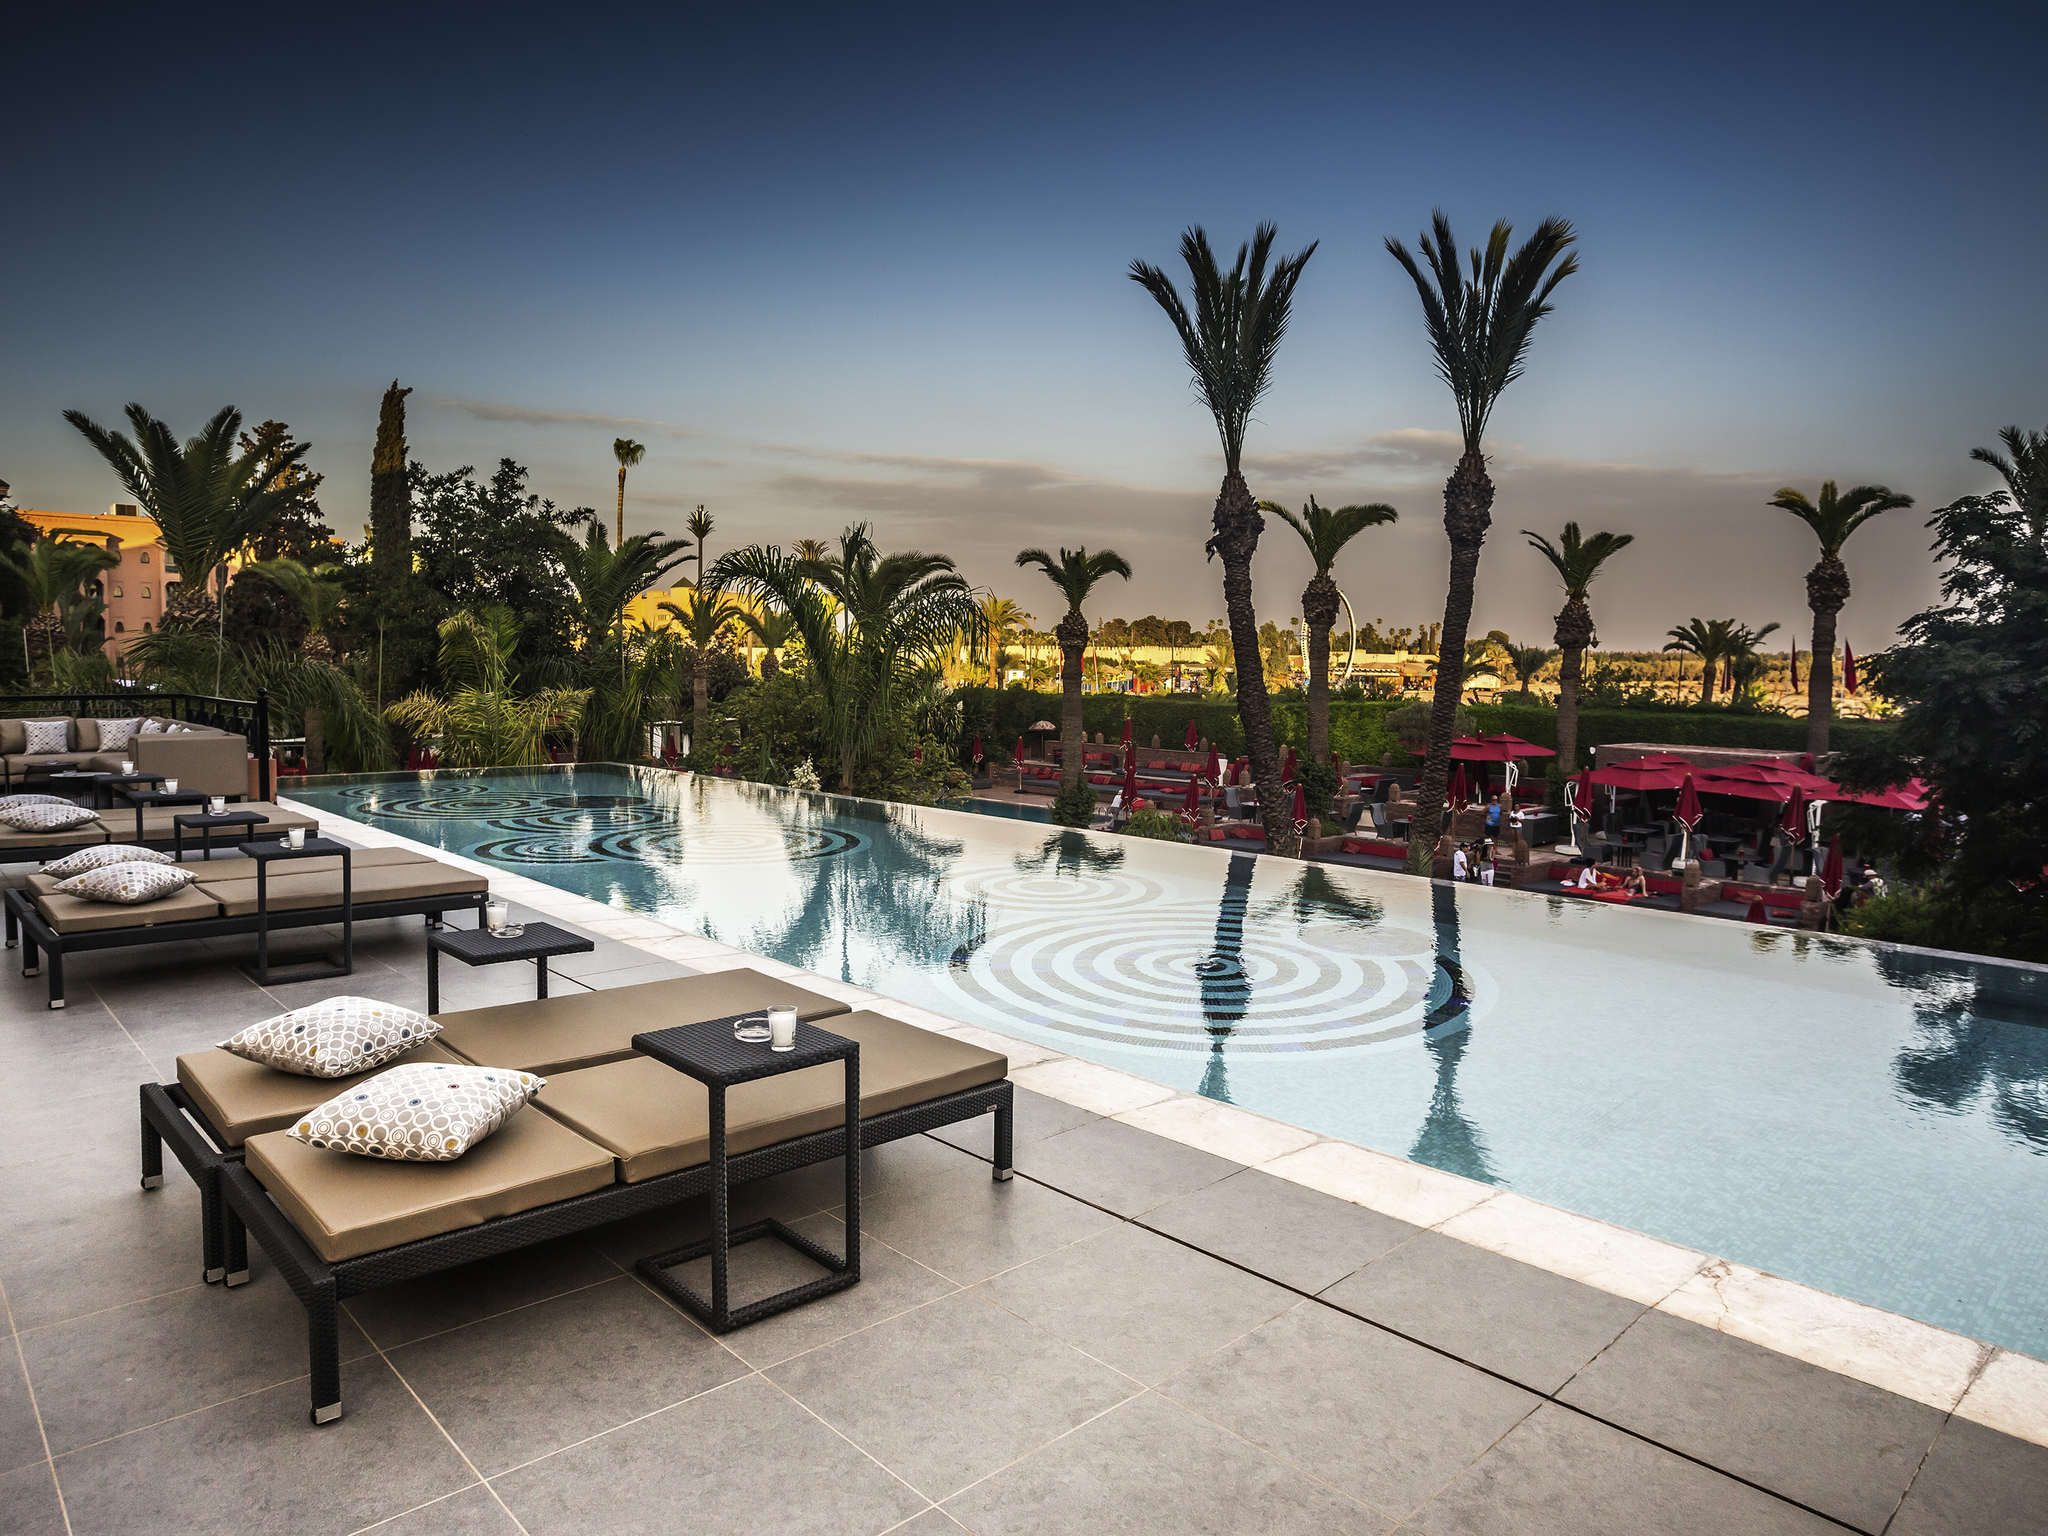 Otel – Sofitel Marrakech Lounge & Spa